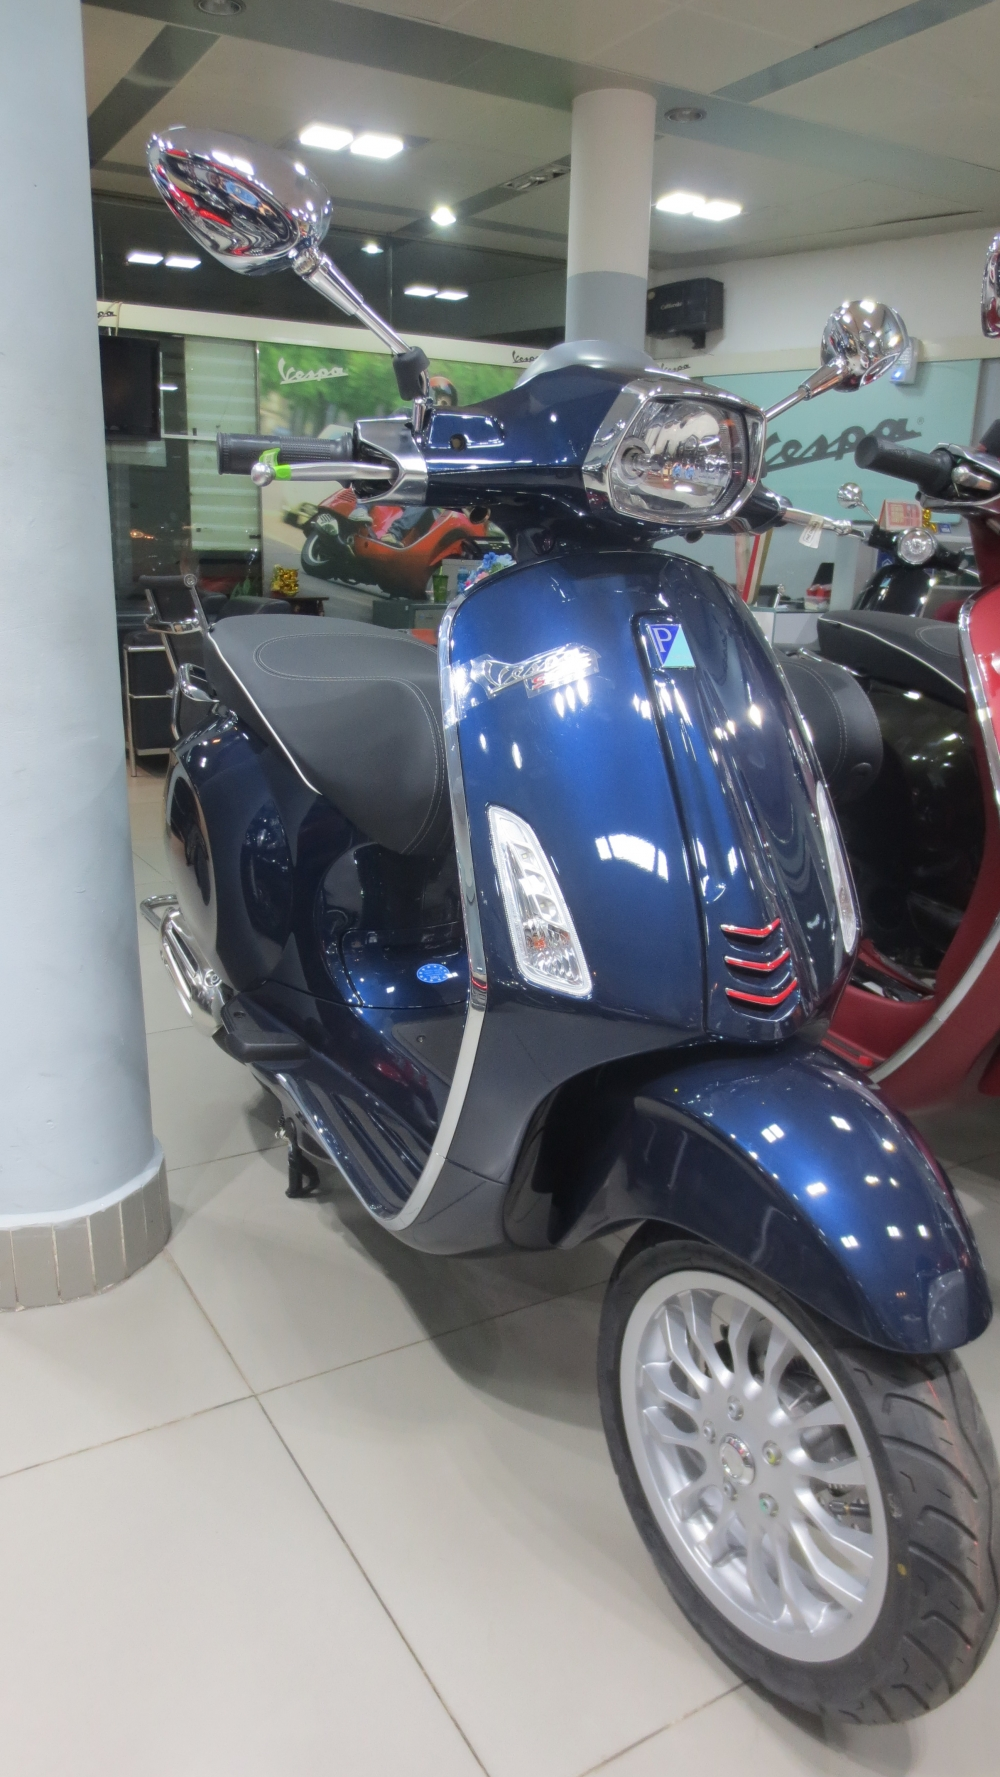 VESPA Sprint ABS chinh hang gia re nhat SG - 10